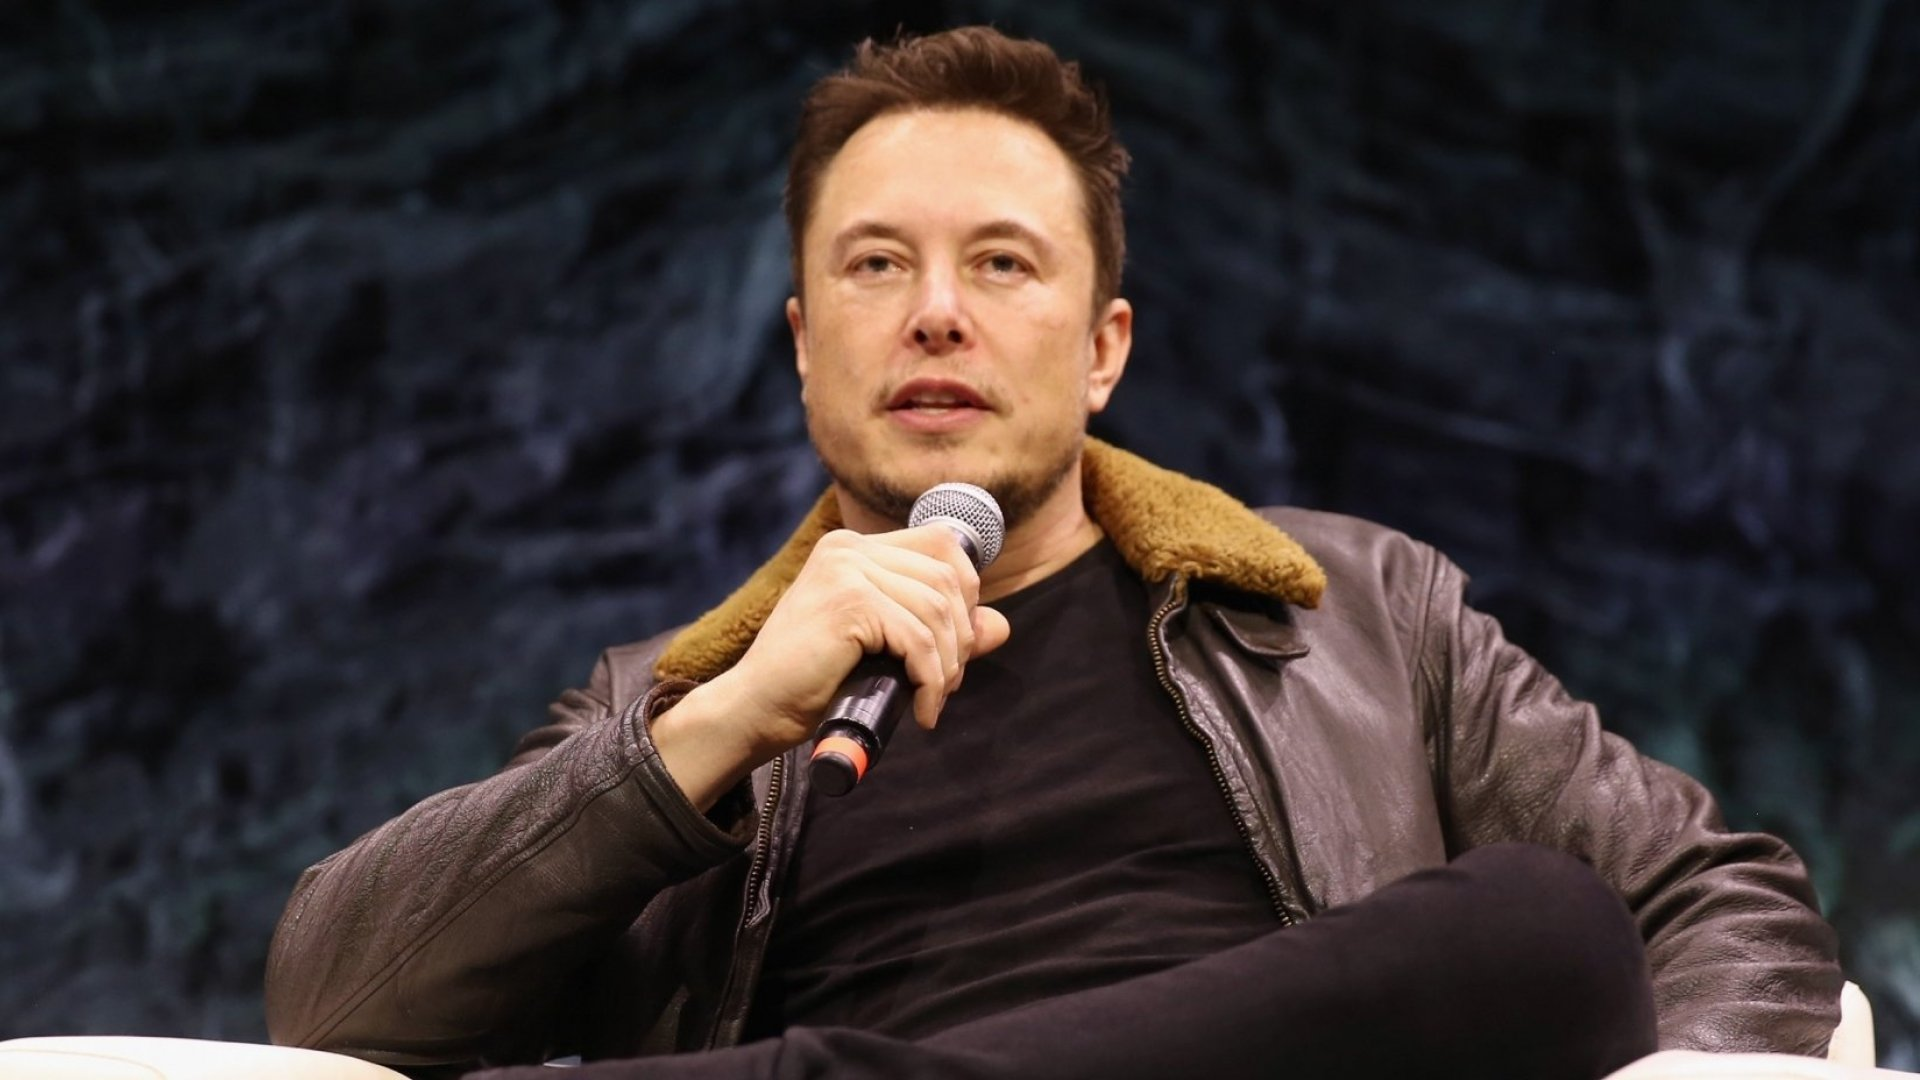 Elon Musk Just Got Bad News on His Latest Tesla Tweet. It Might Lead to His Ousting